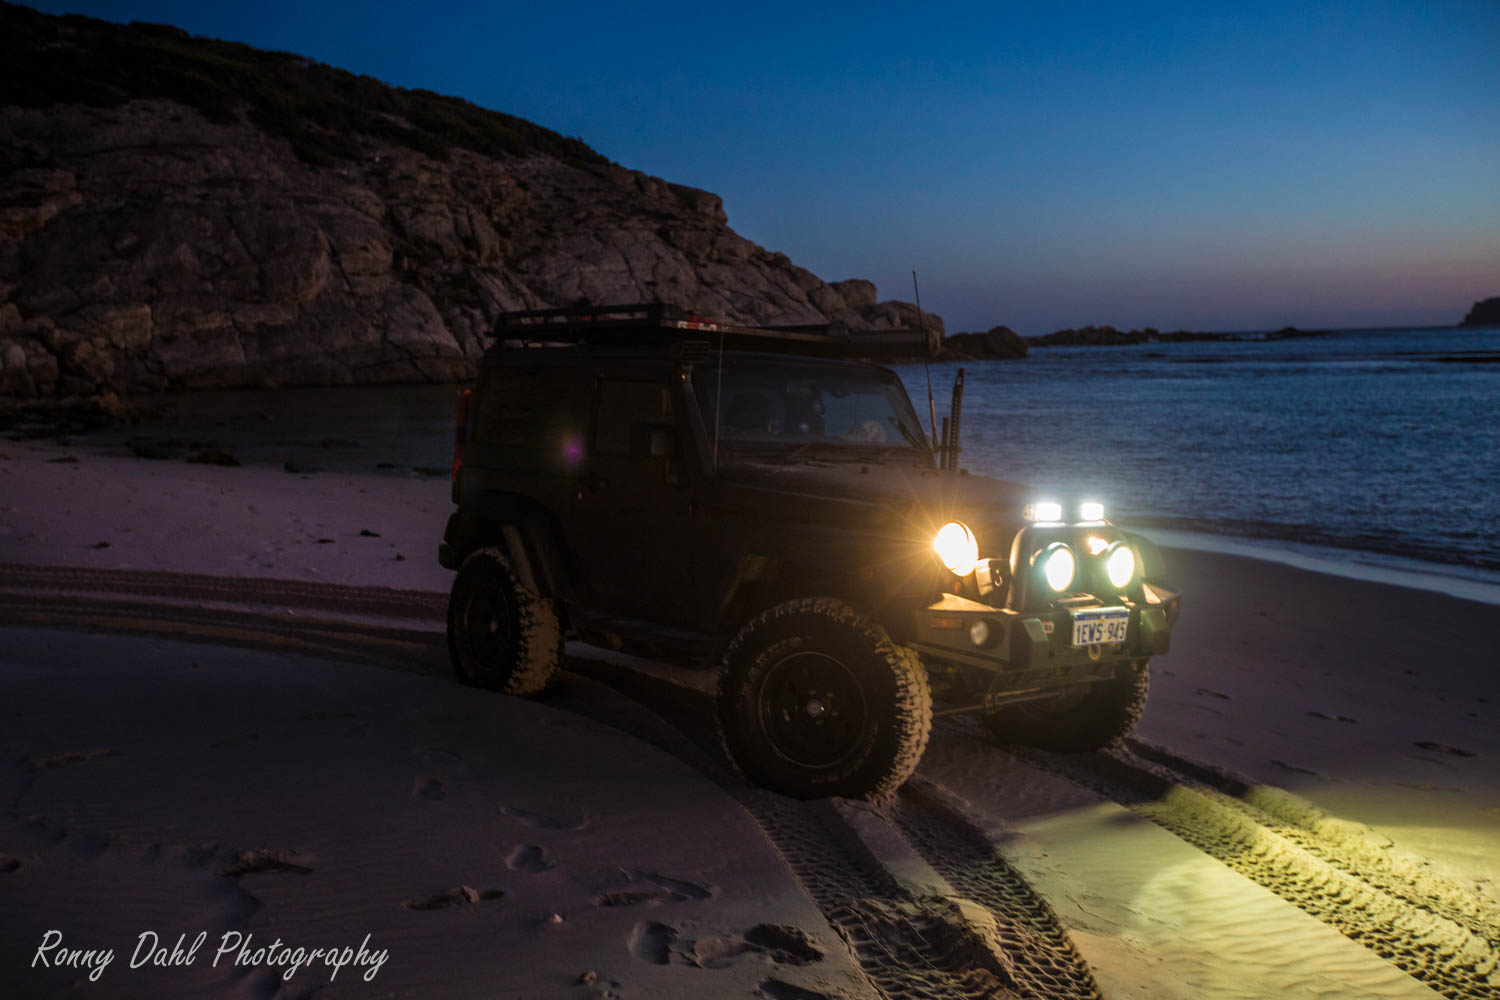 A Jeep JK Wrangler in the sunset.